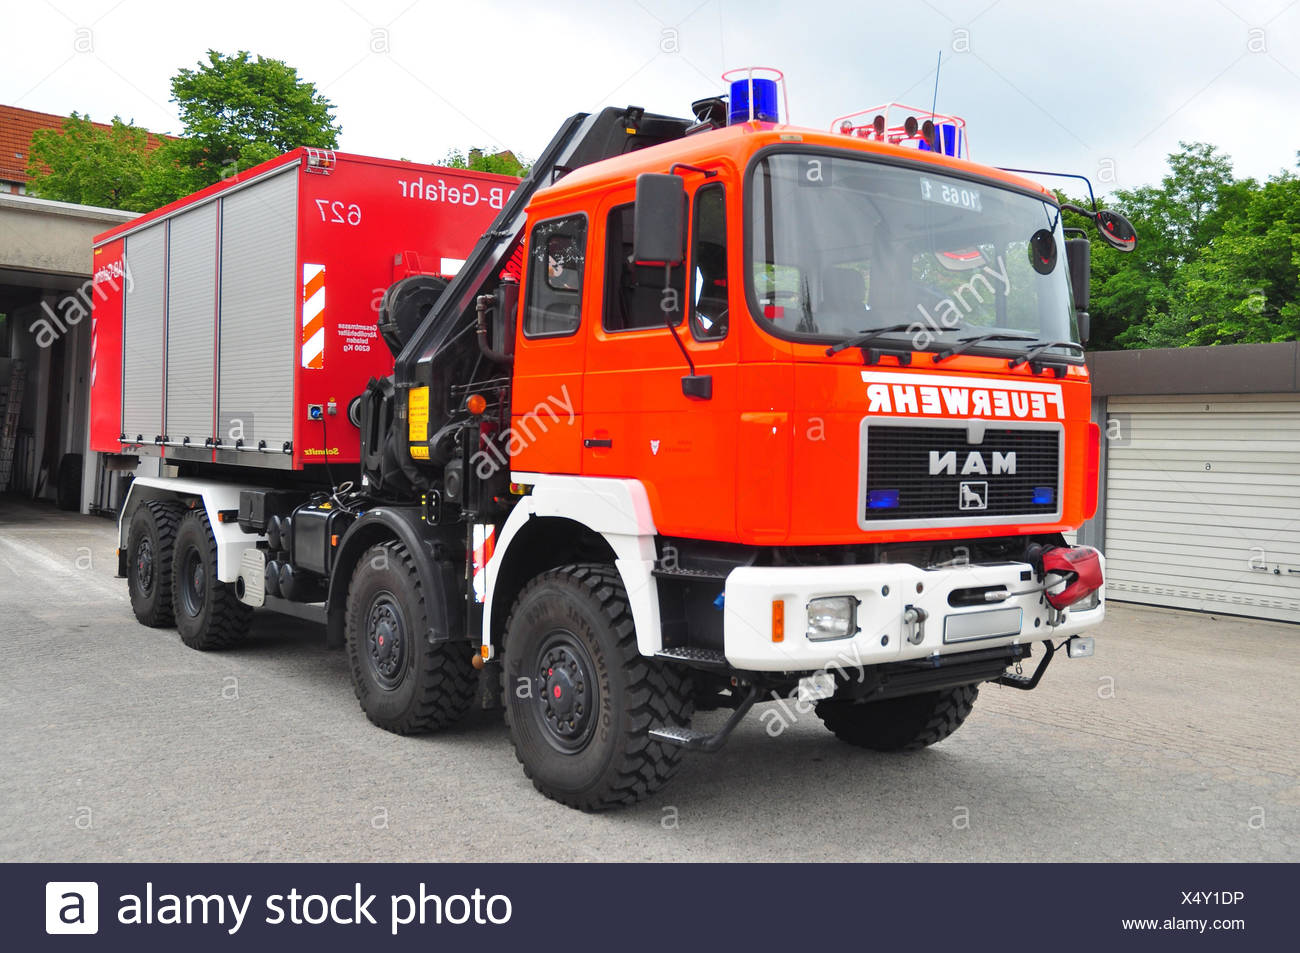 Fire brigade, vehicle, AB-Rüst, Abrollcontainer, - Stock Image